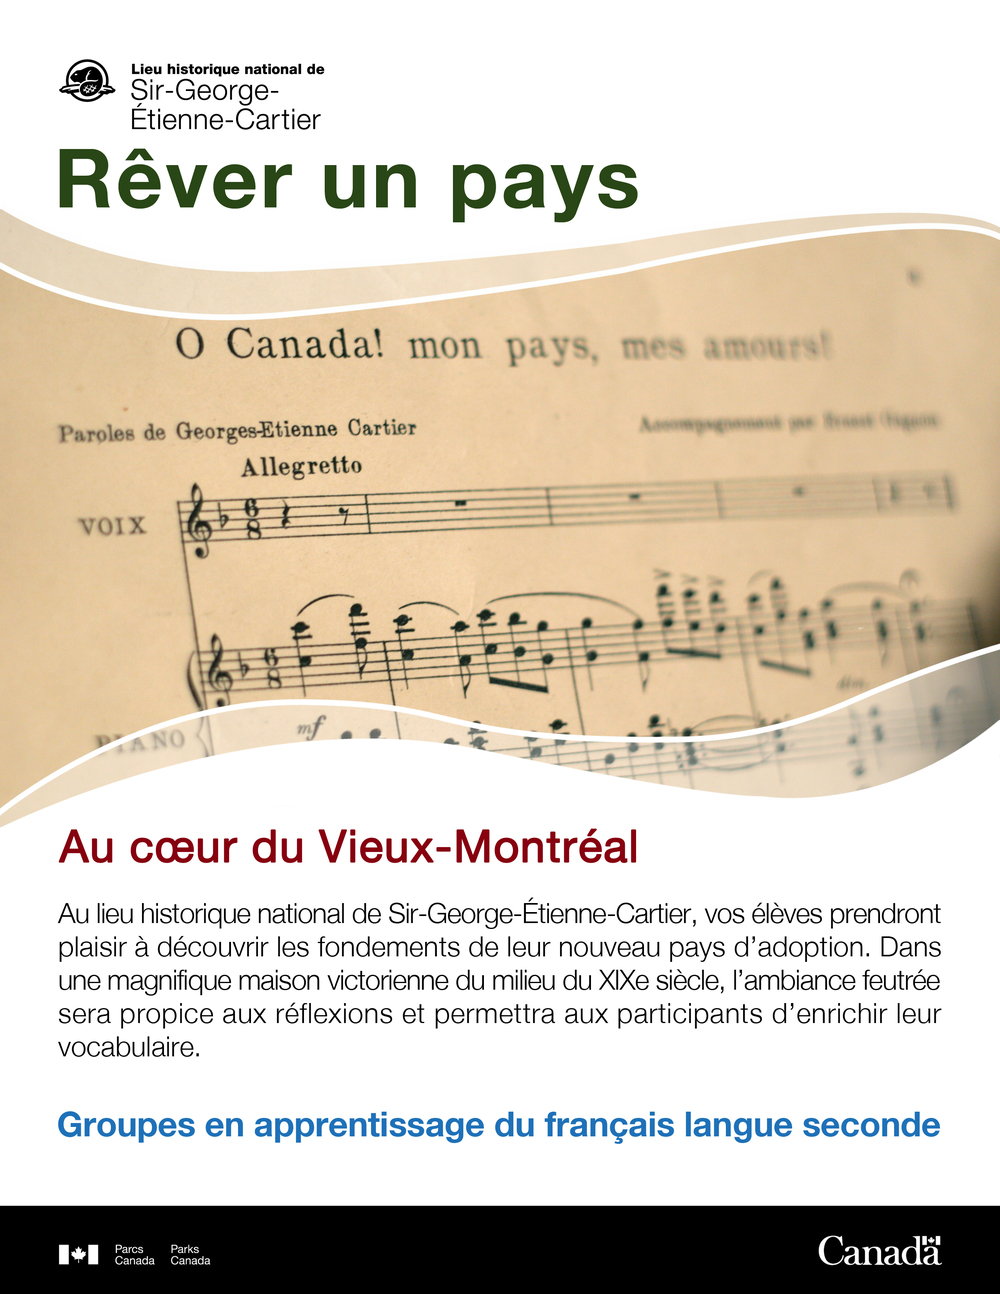 Promotional document sent to Montreal teachers about the educational activities held at the Sir-George-Étienne-Cartier National Historic Site